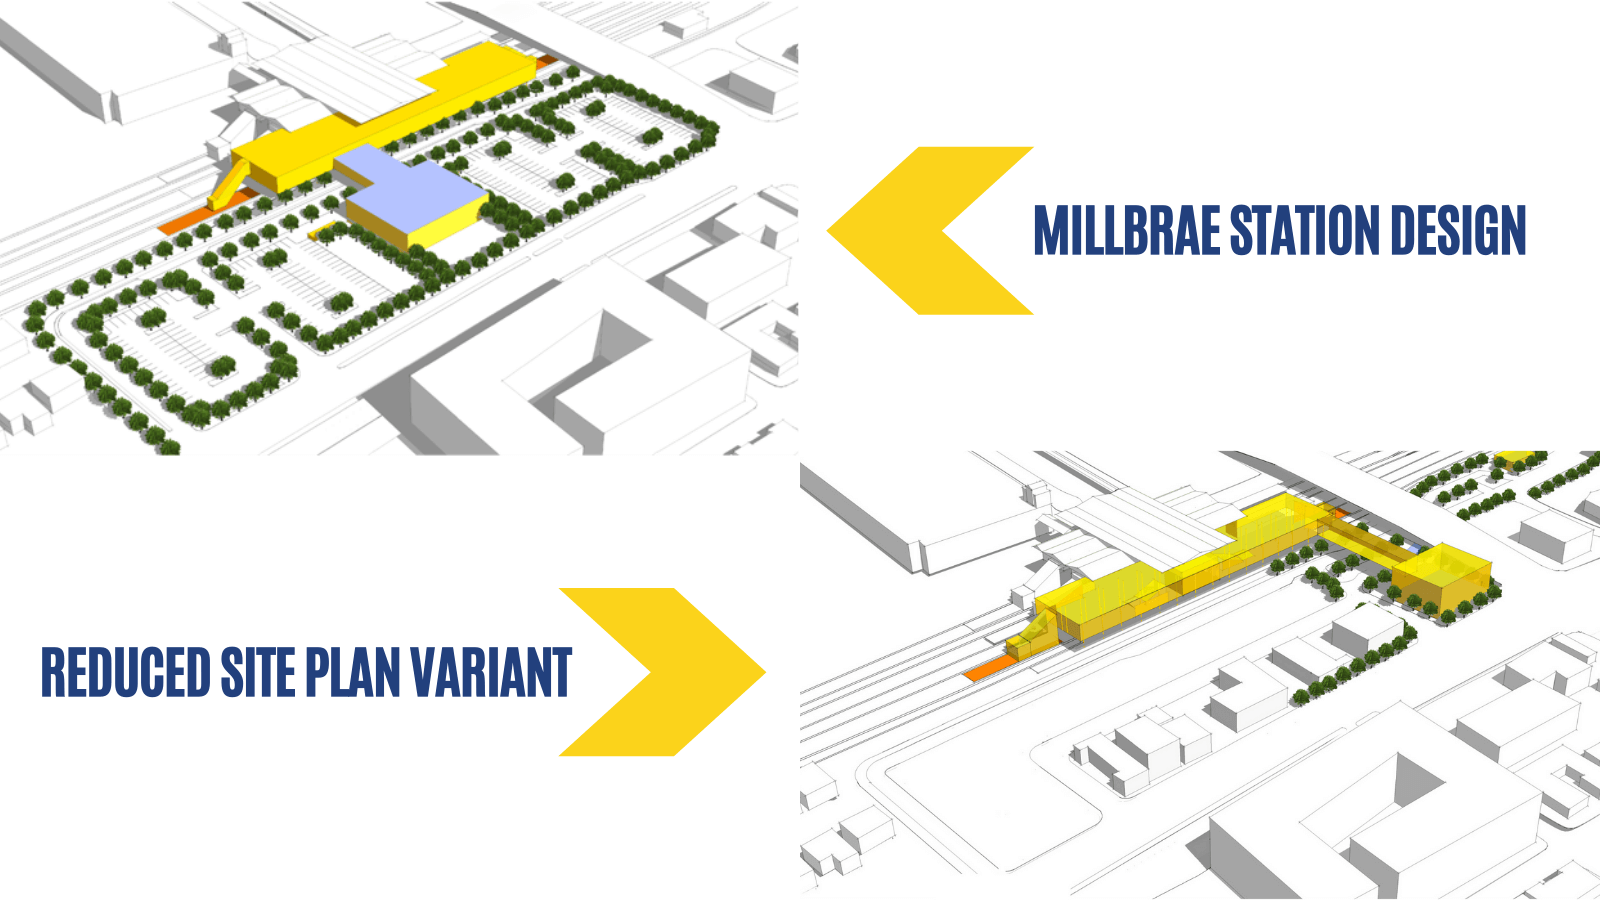 Two illustrations of Millbrae Station